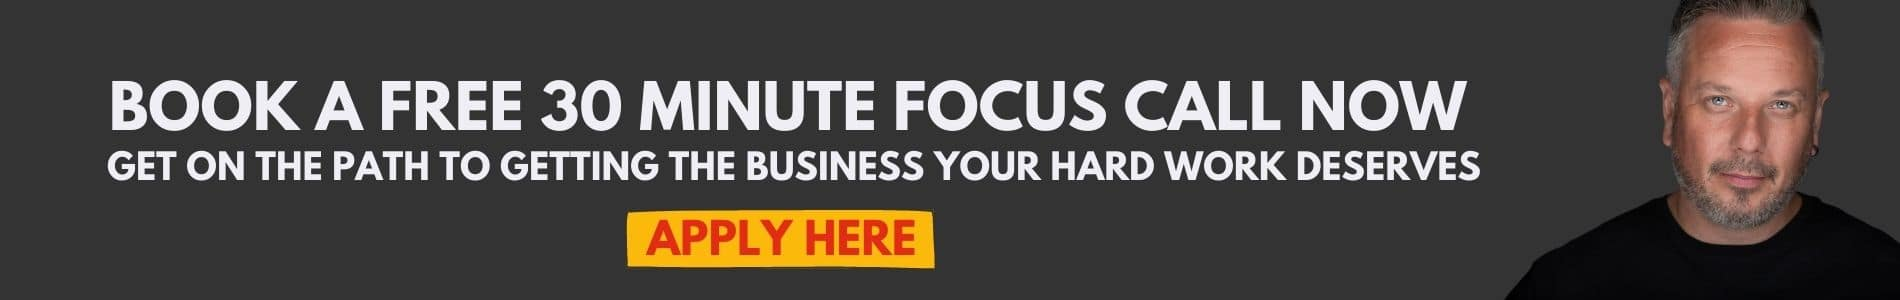 book a free 30 minute session with Marc Ford business coach in leicester